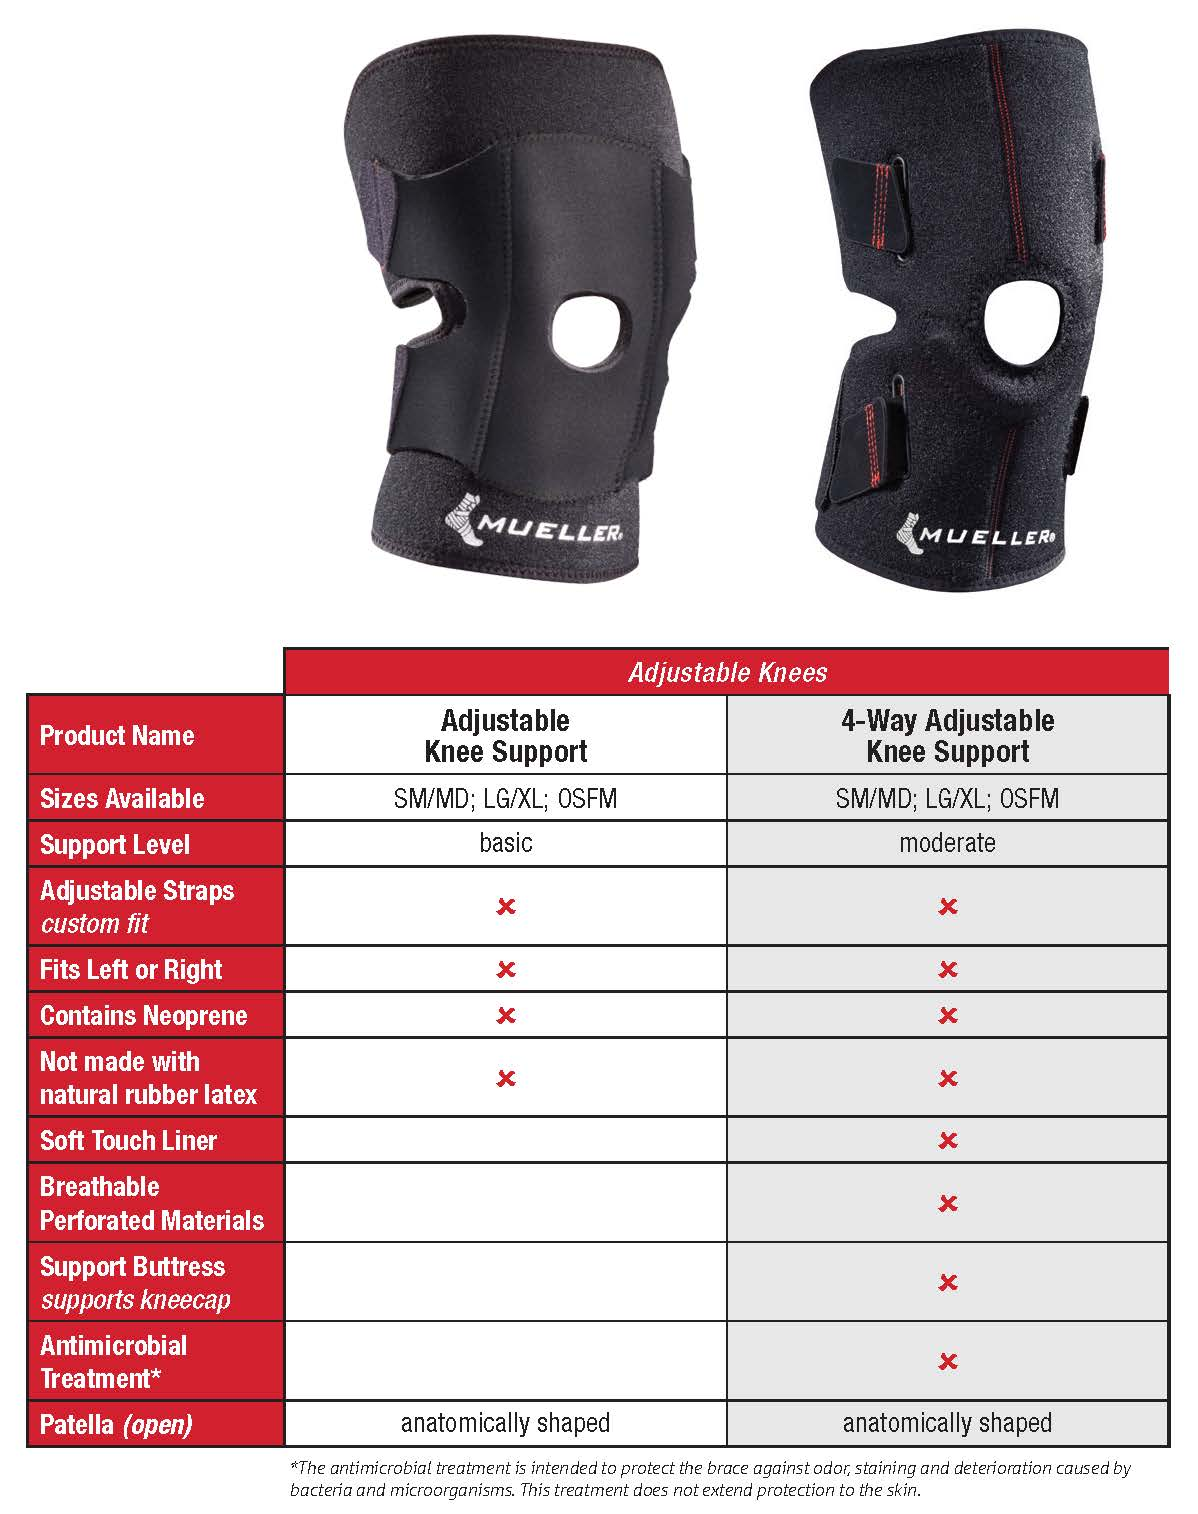 4 Way Adjustable Knee Support Comparison Chart